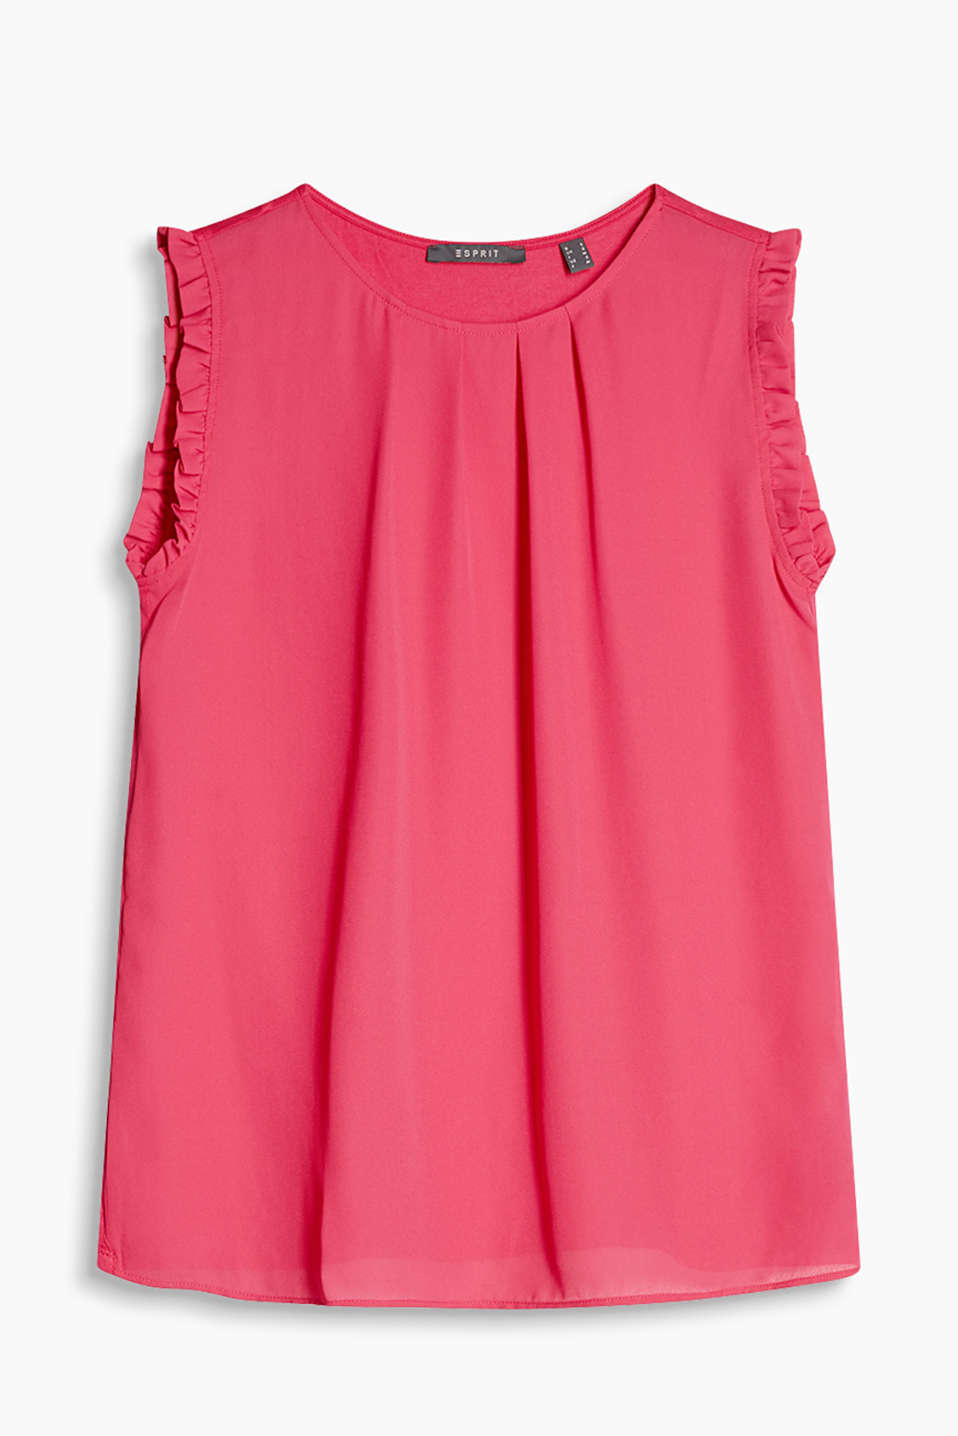 Sleeveless semi-sheer top in softly flowing blended fabric with pretty frills